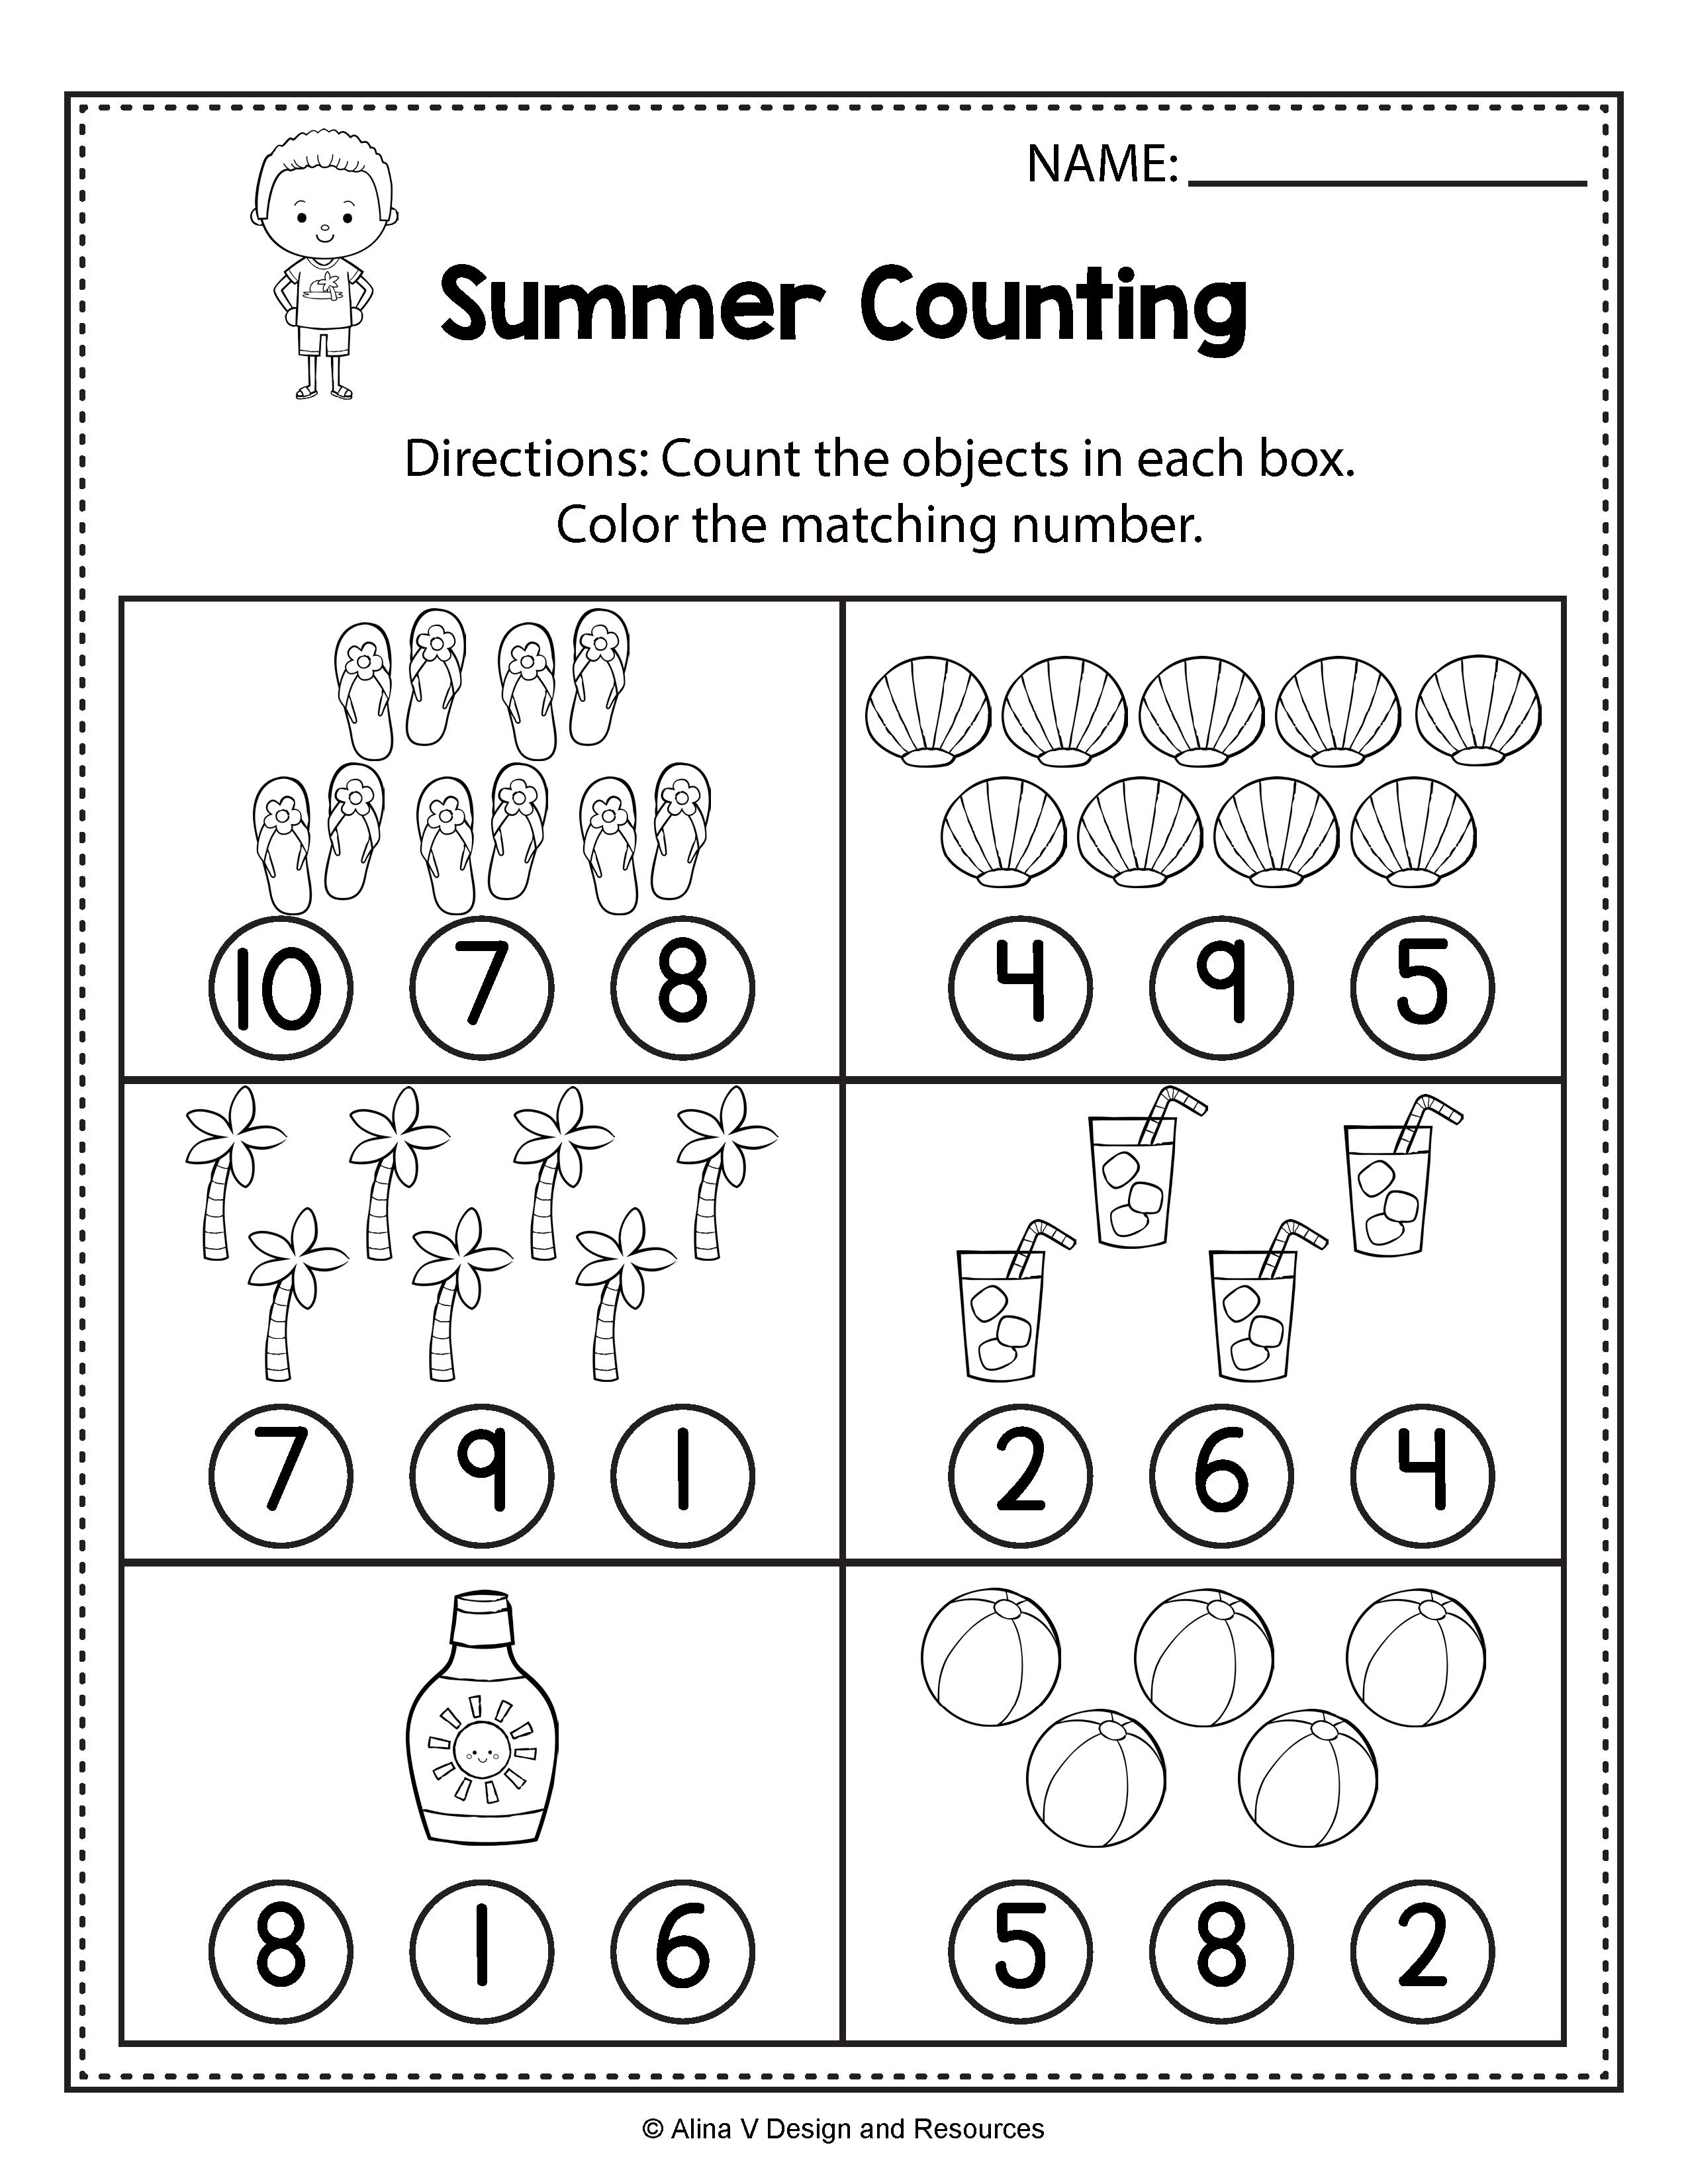 Counting Worksheets Summer Math Worksheets And Activities For Preschool Kin Summer Math Worksheets Kindergarten Addition Worksheets Math Counting Worksheets